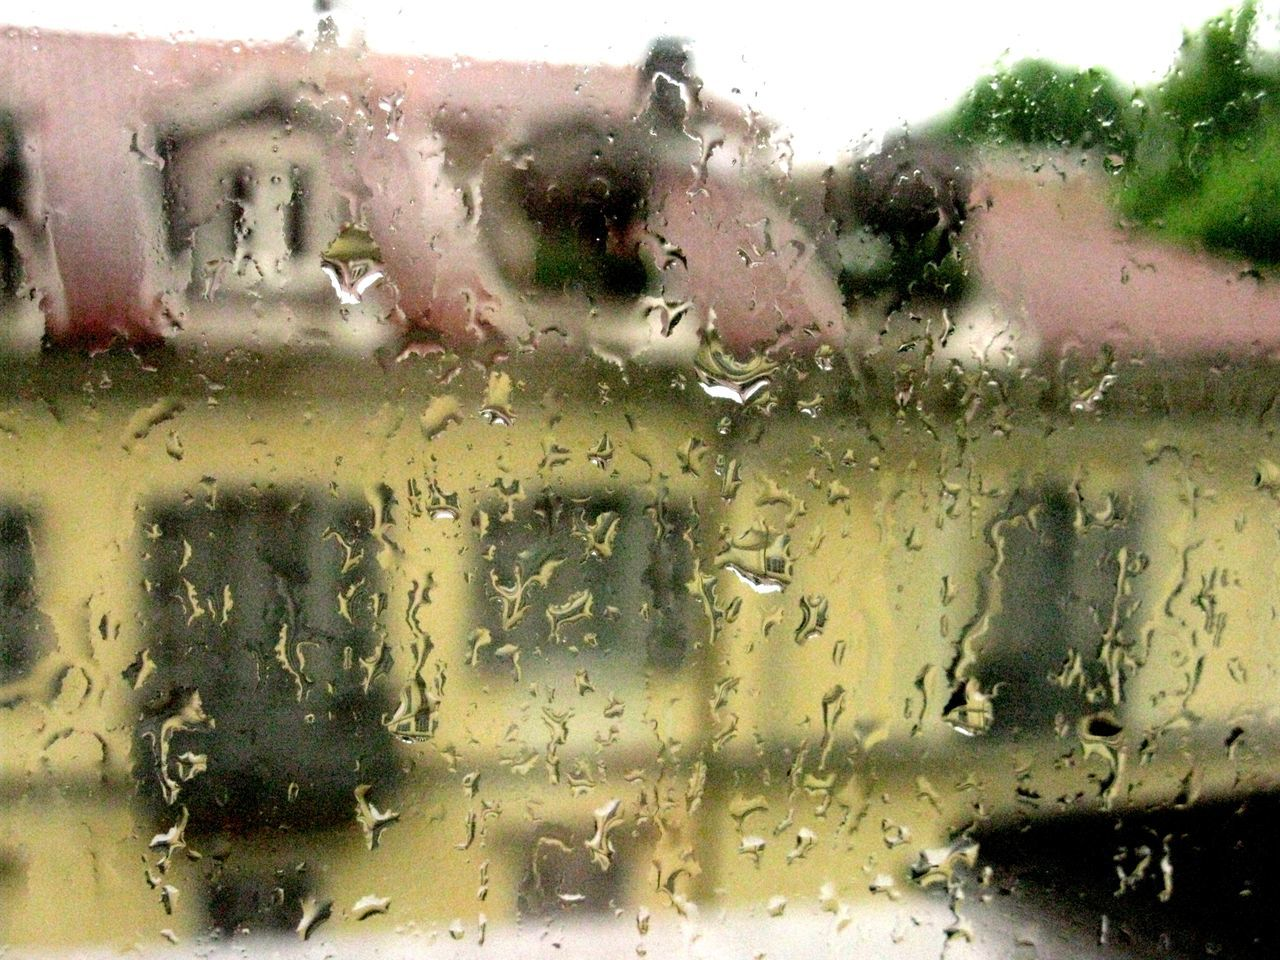 Close-up Day Drop Glass - Material Indoors  Rain Rooftop Sky Transparent Tree Water Wet Window